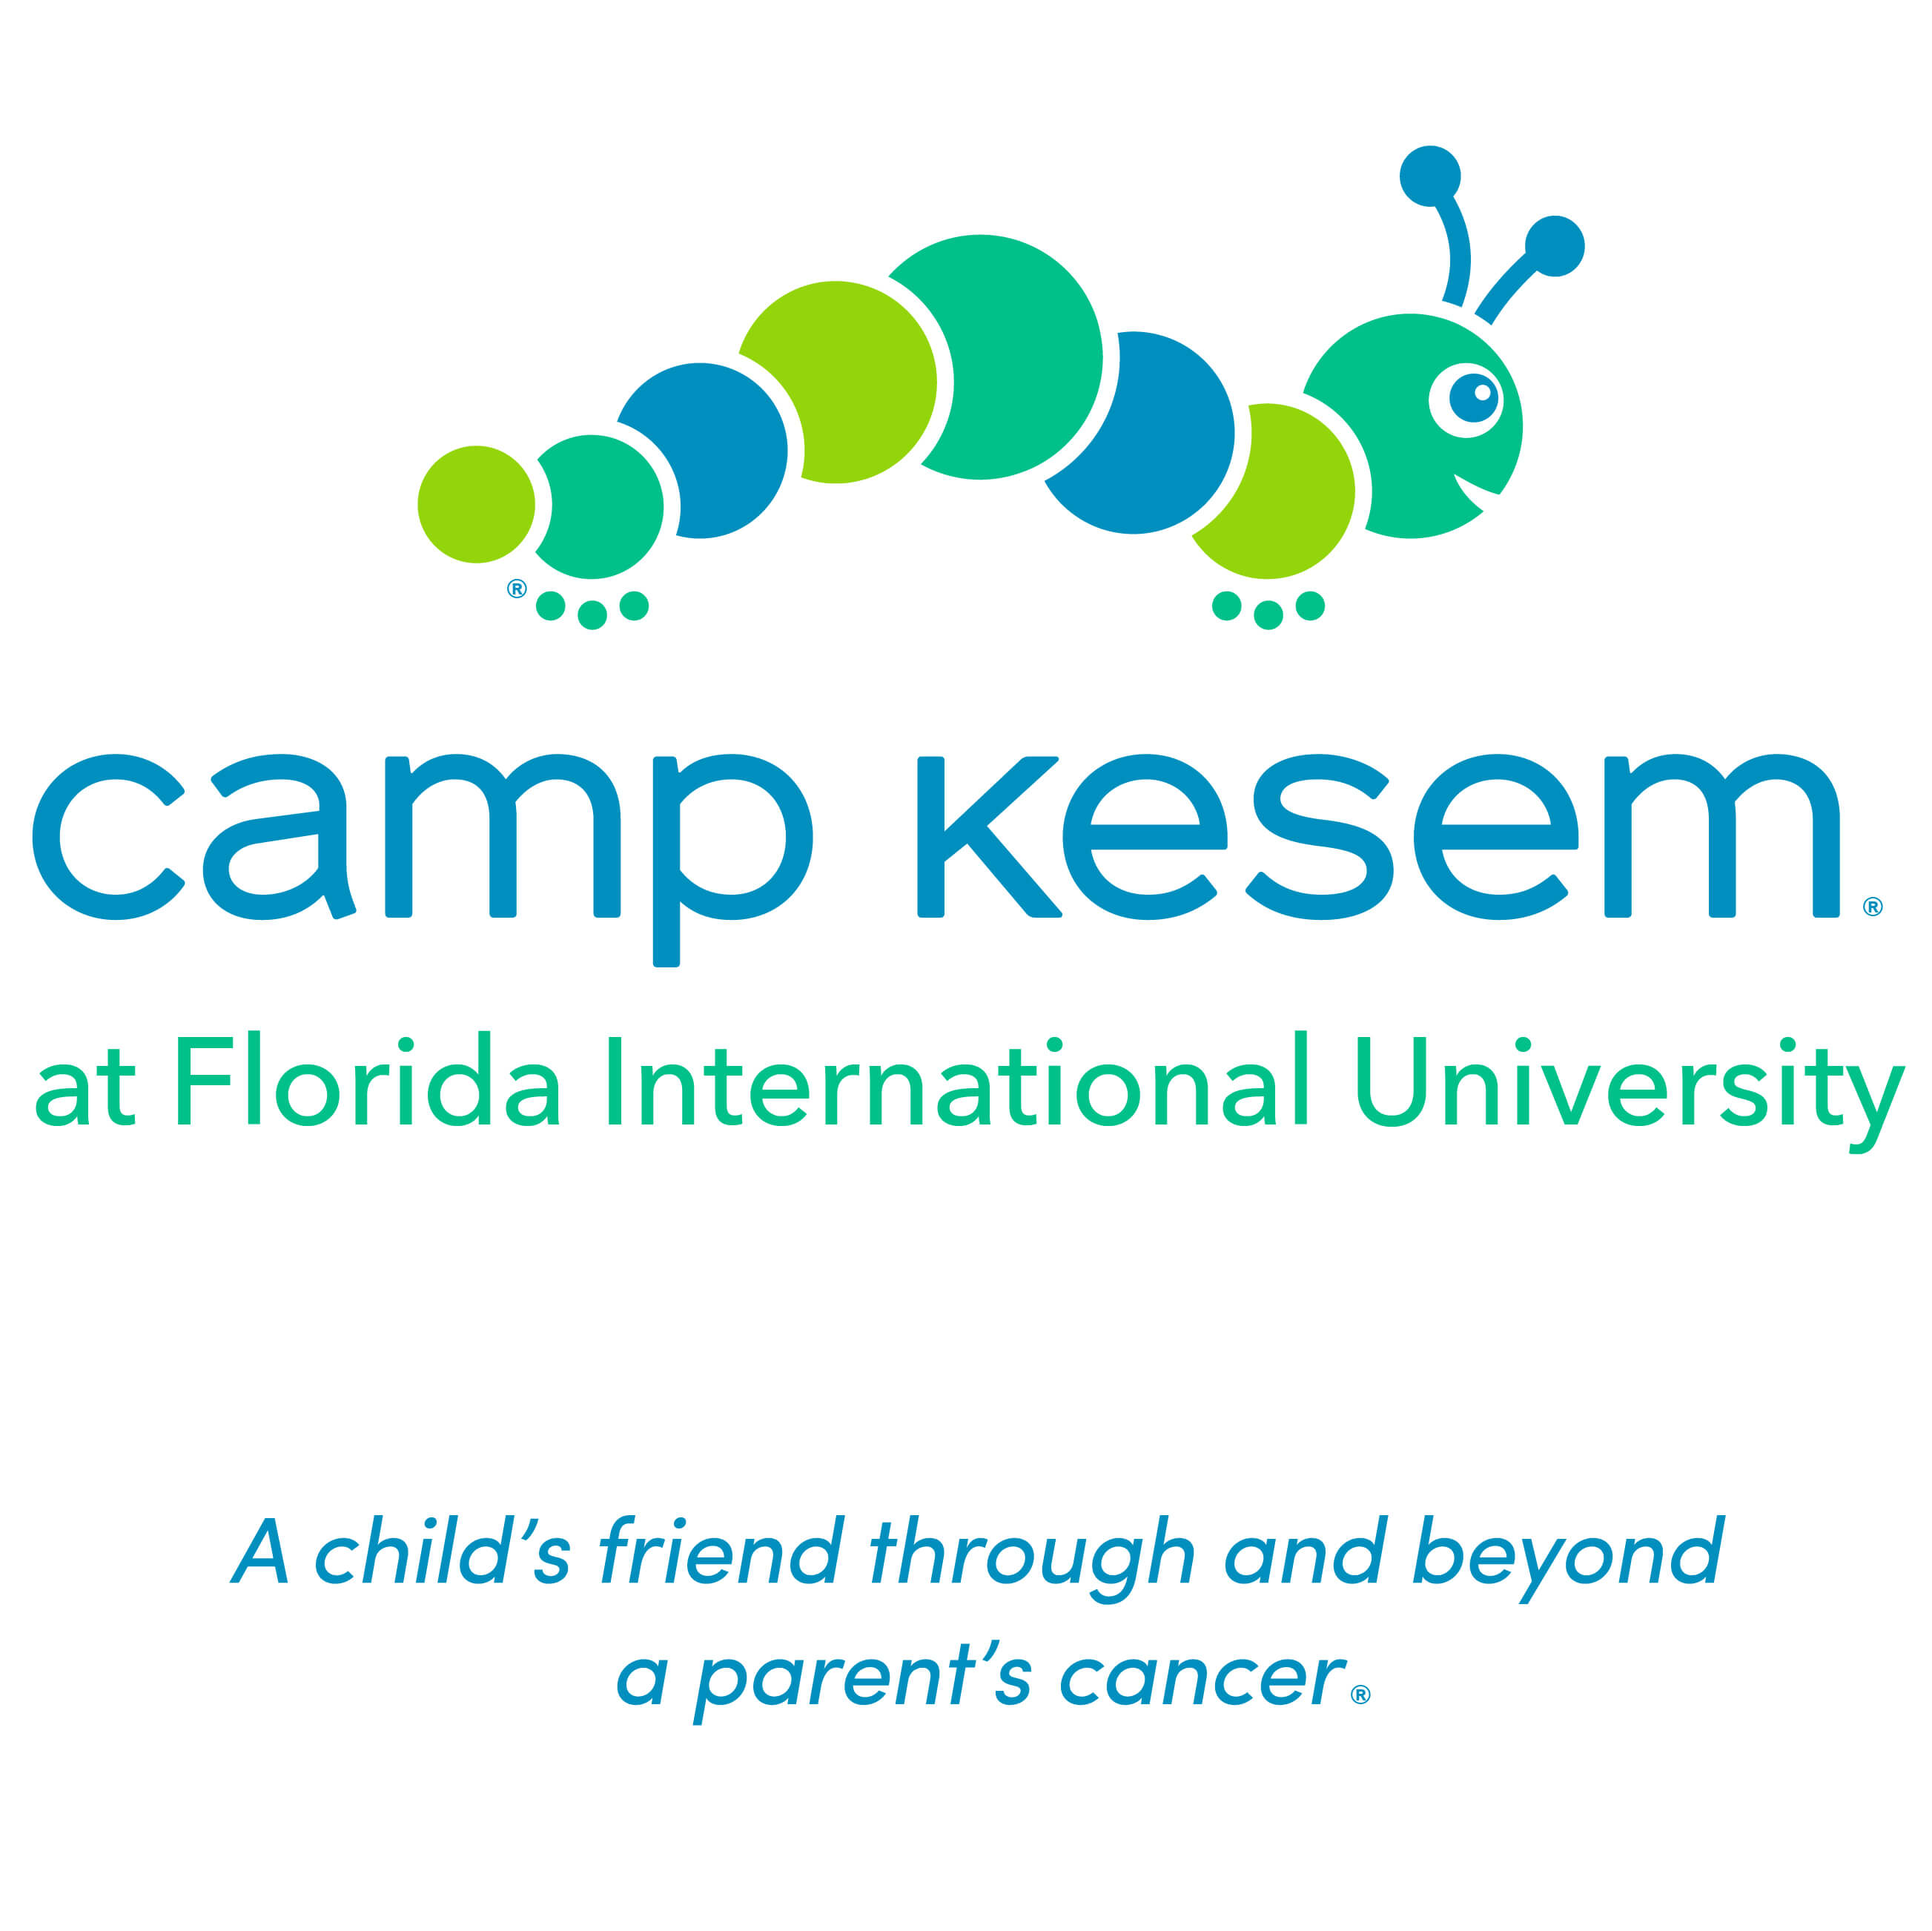 Camp Kesem at Florida International University